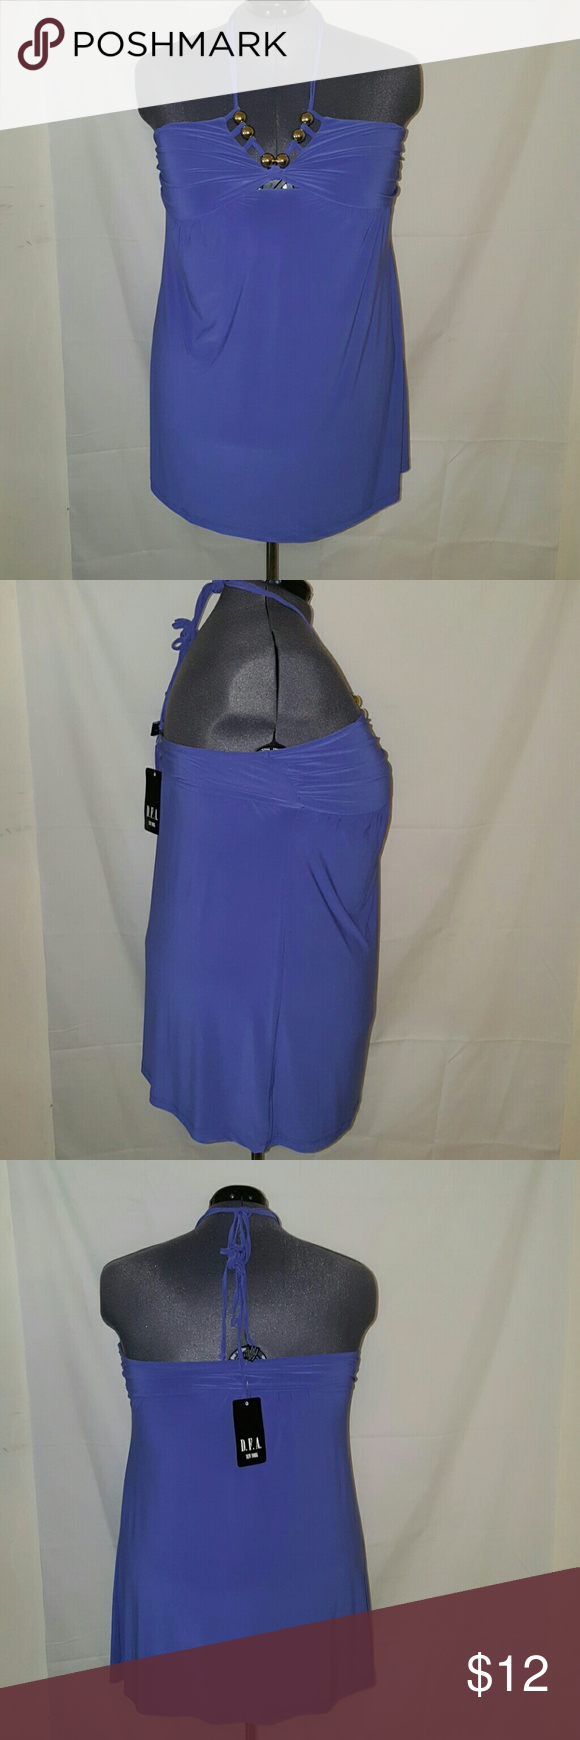 BLUEISH PURPLISH HALTER TOP Size L but can fit a 2x very stretchy 95% polyester 5% spandex Tops